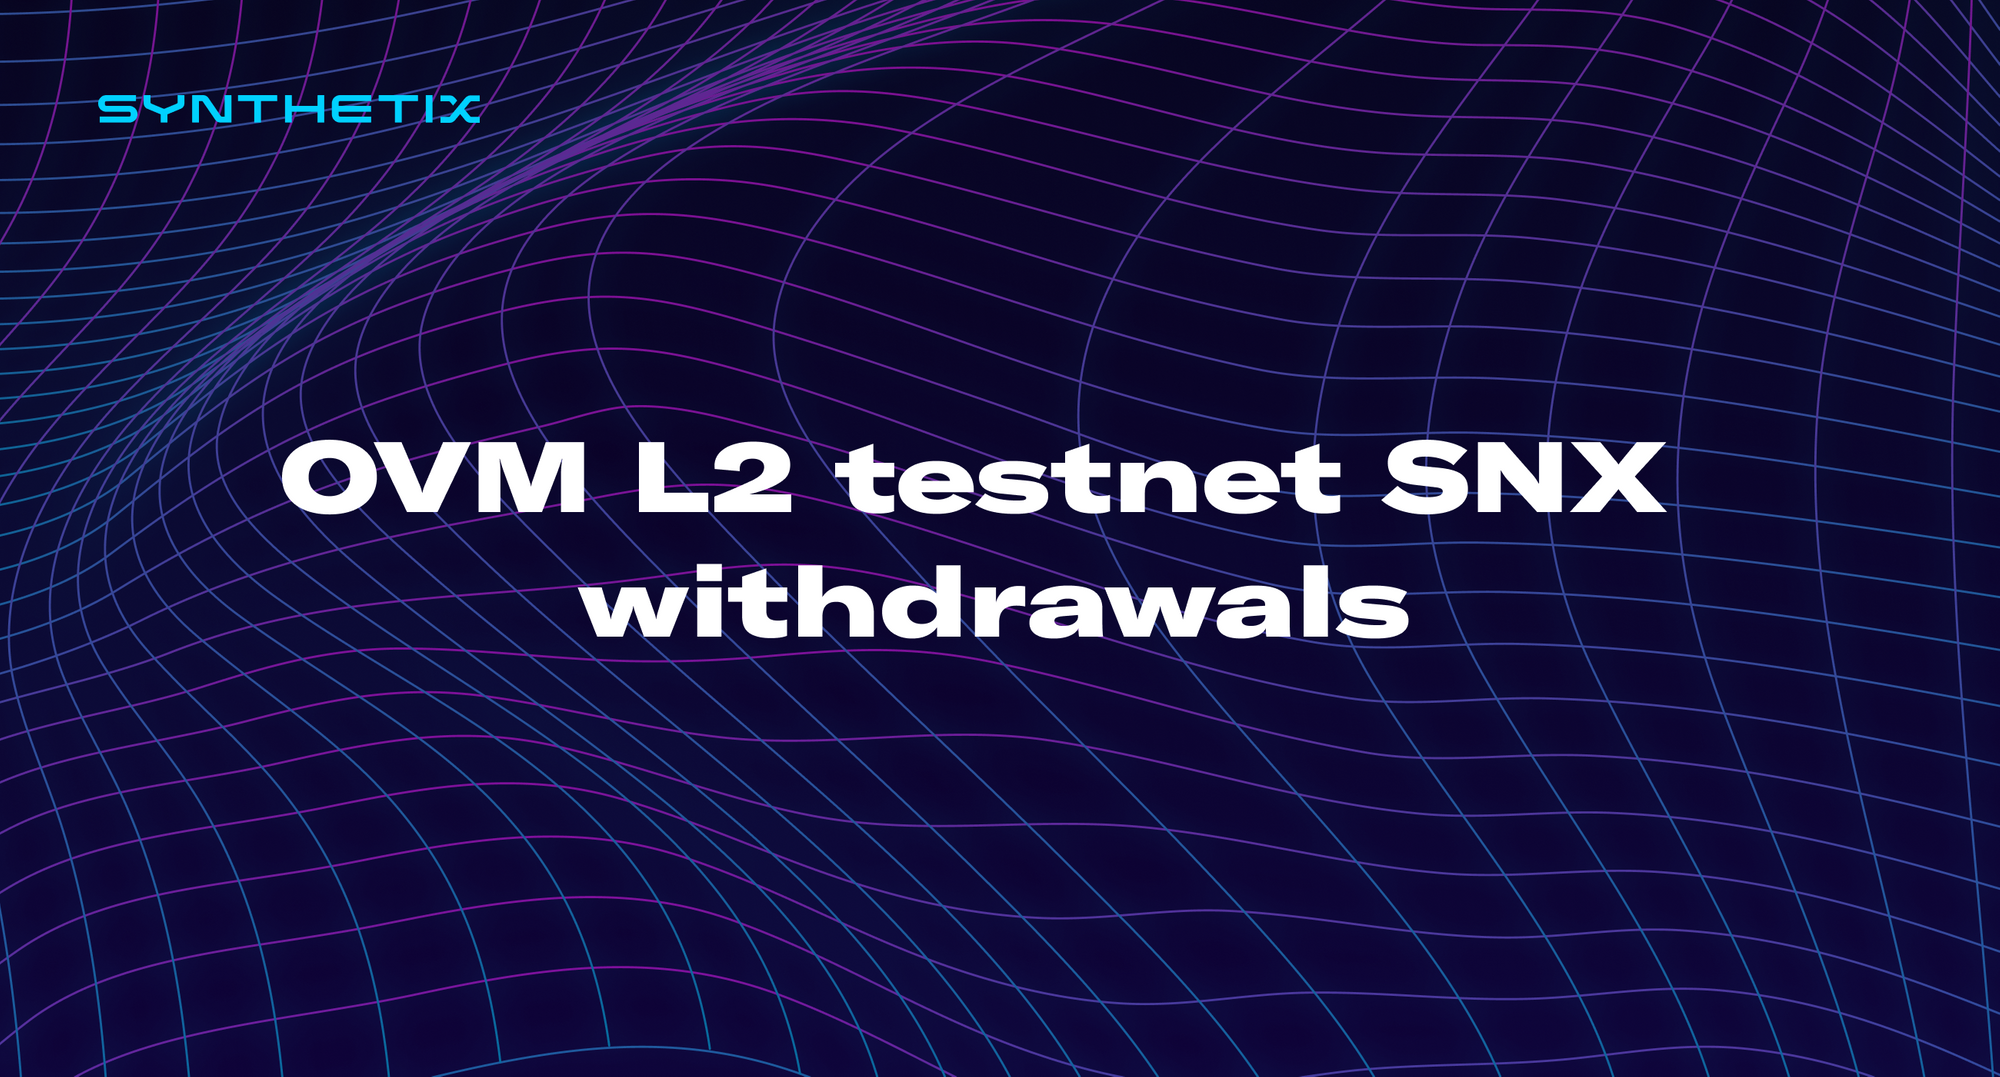 L2 SNX is now available for withdrawal from the Optimistic Ethereum testnet